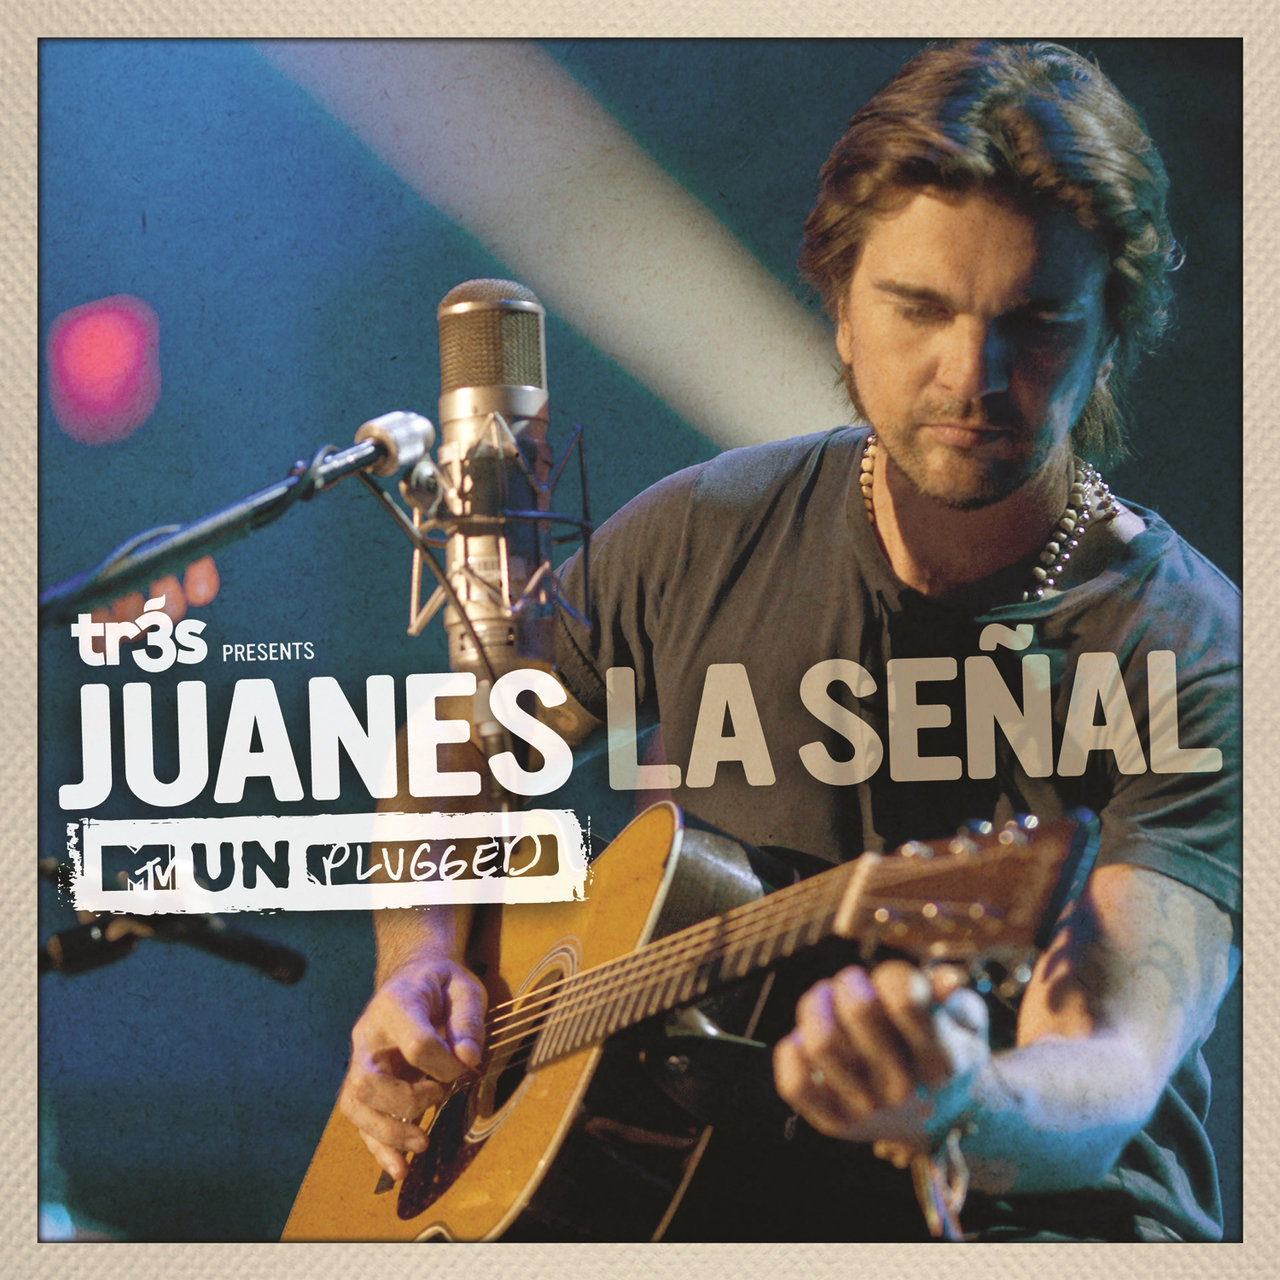 La Señal (MTV Unplugged)